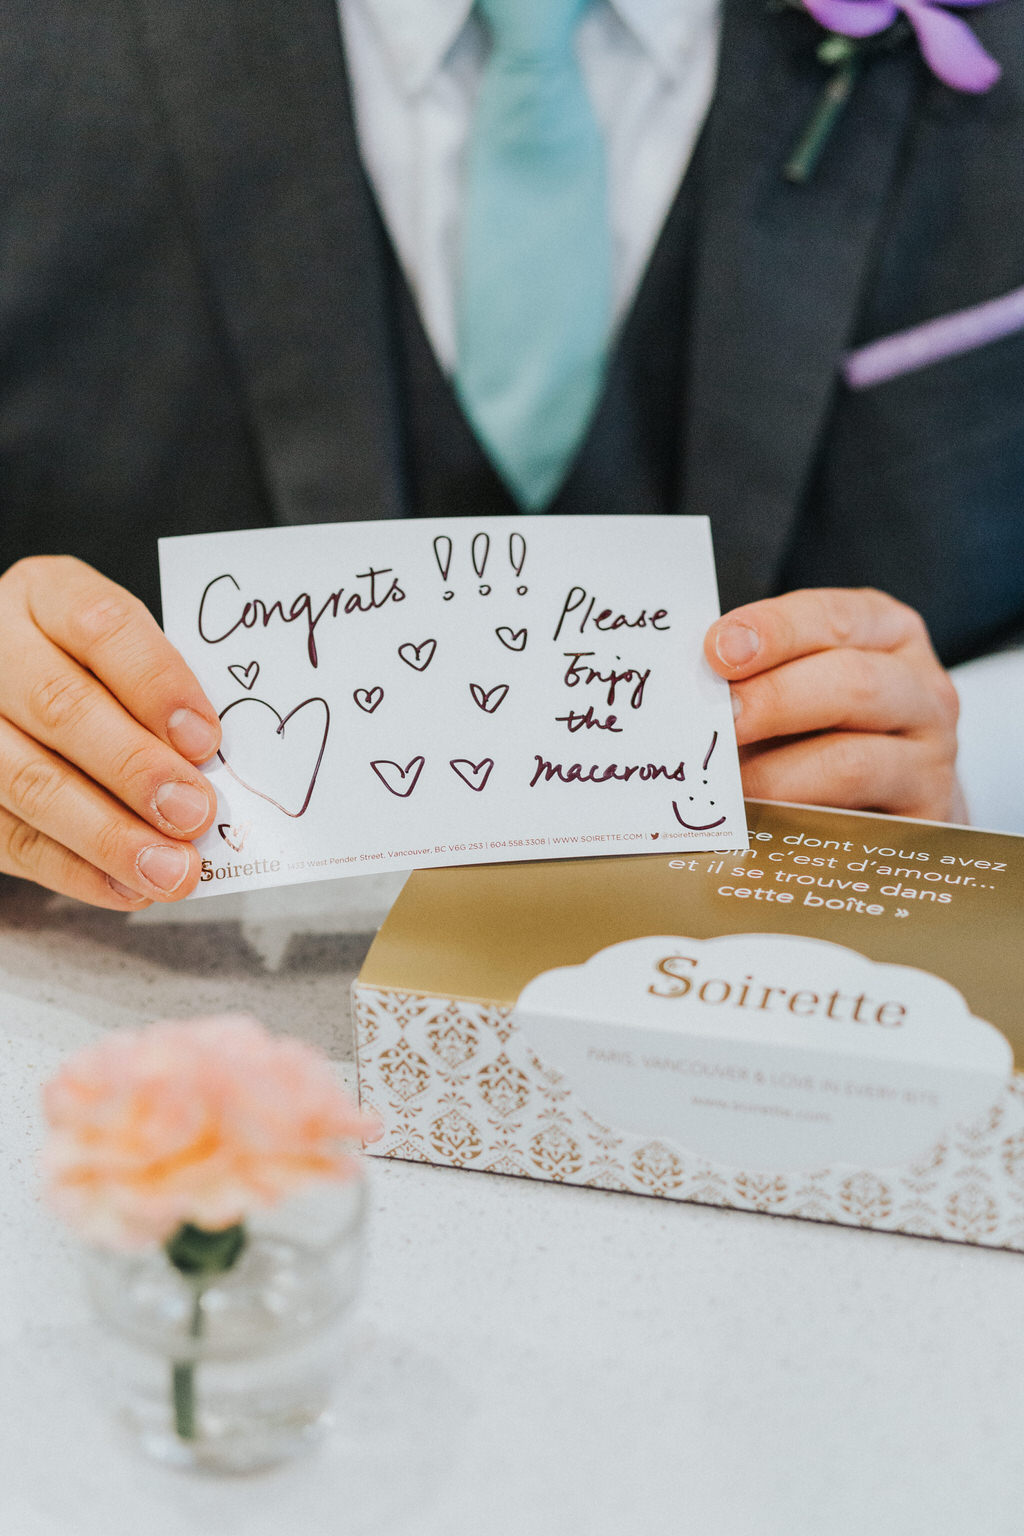 Box of Macarons with card reading Congrats! Please enjoy the macarons!